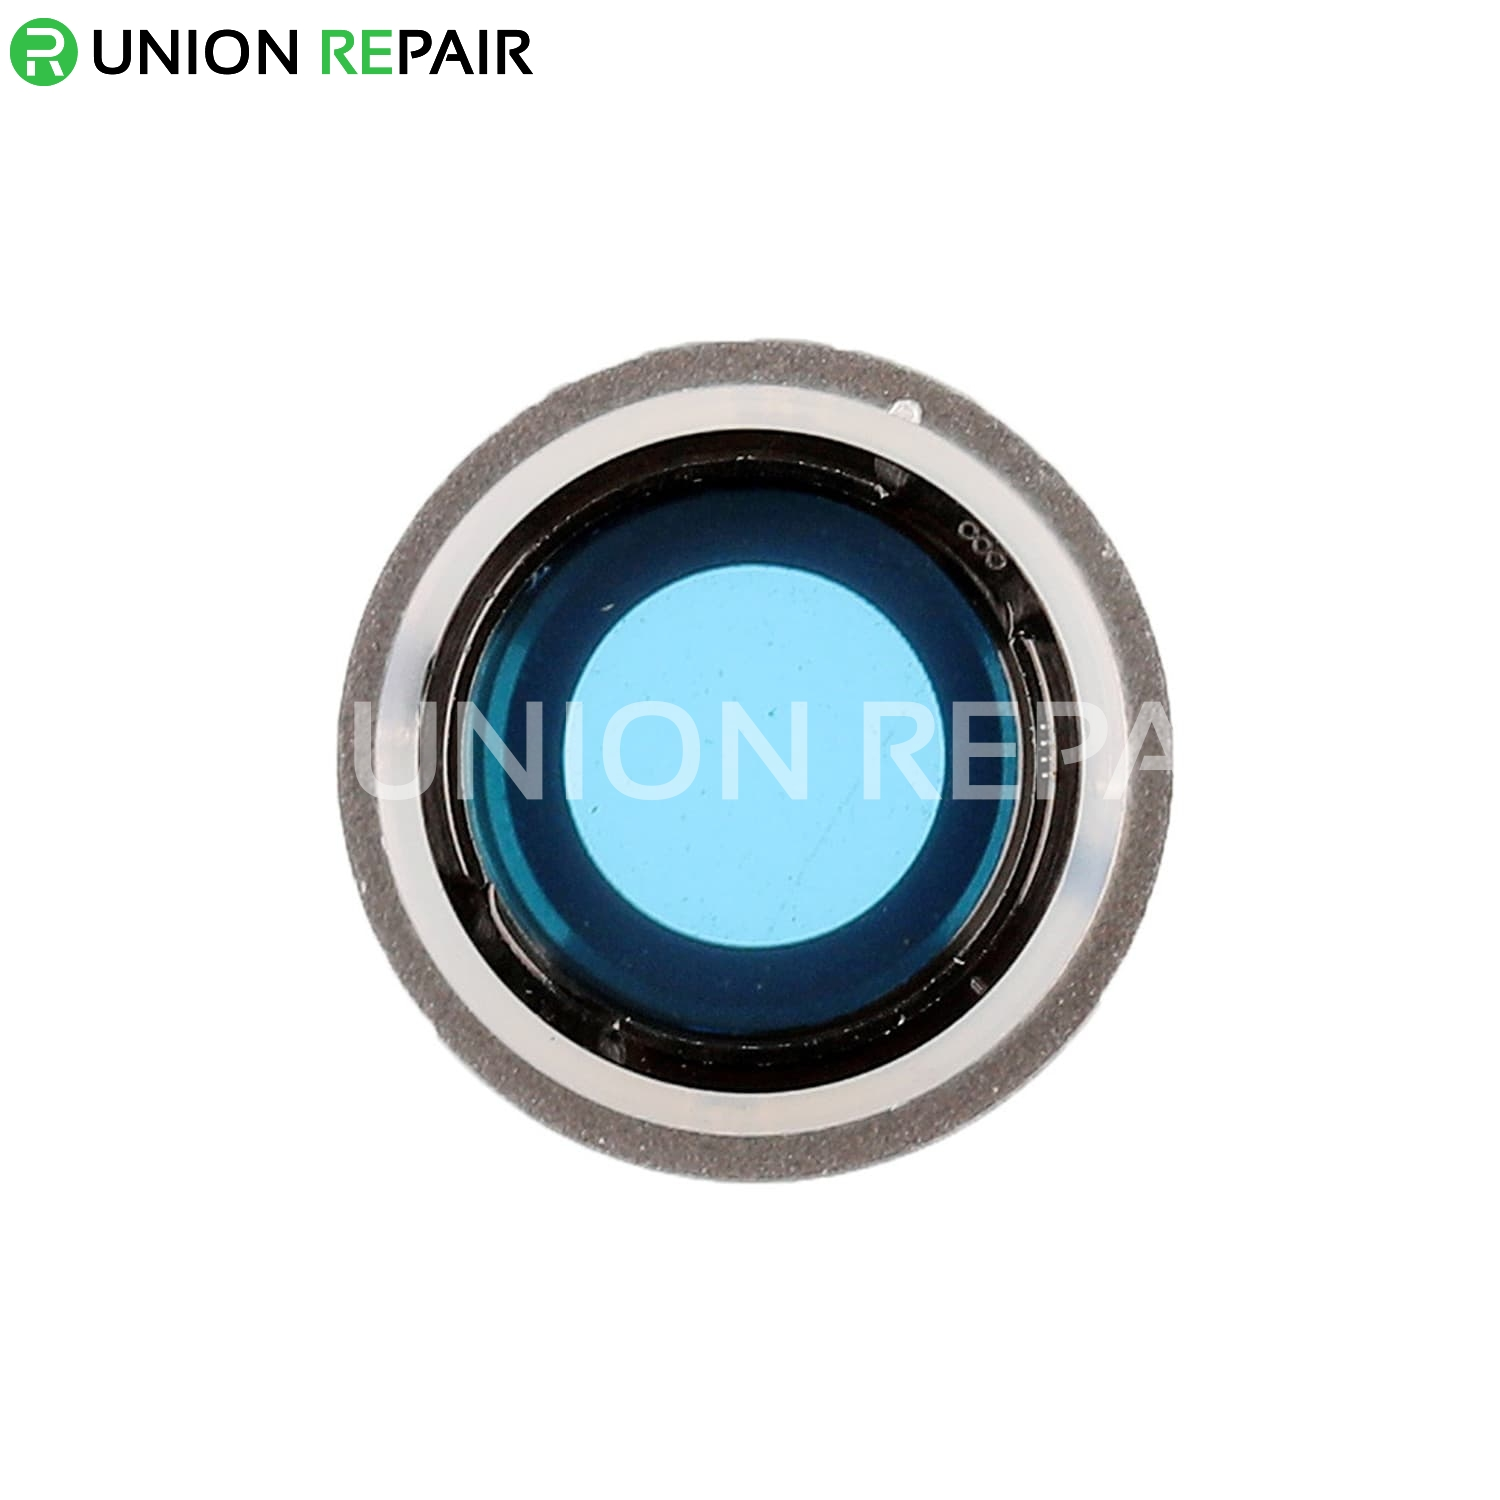 Iphone S Camera Lens Replacement